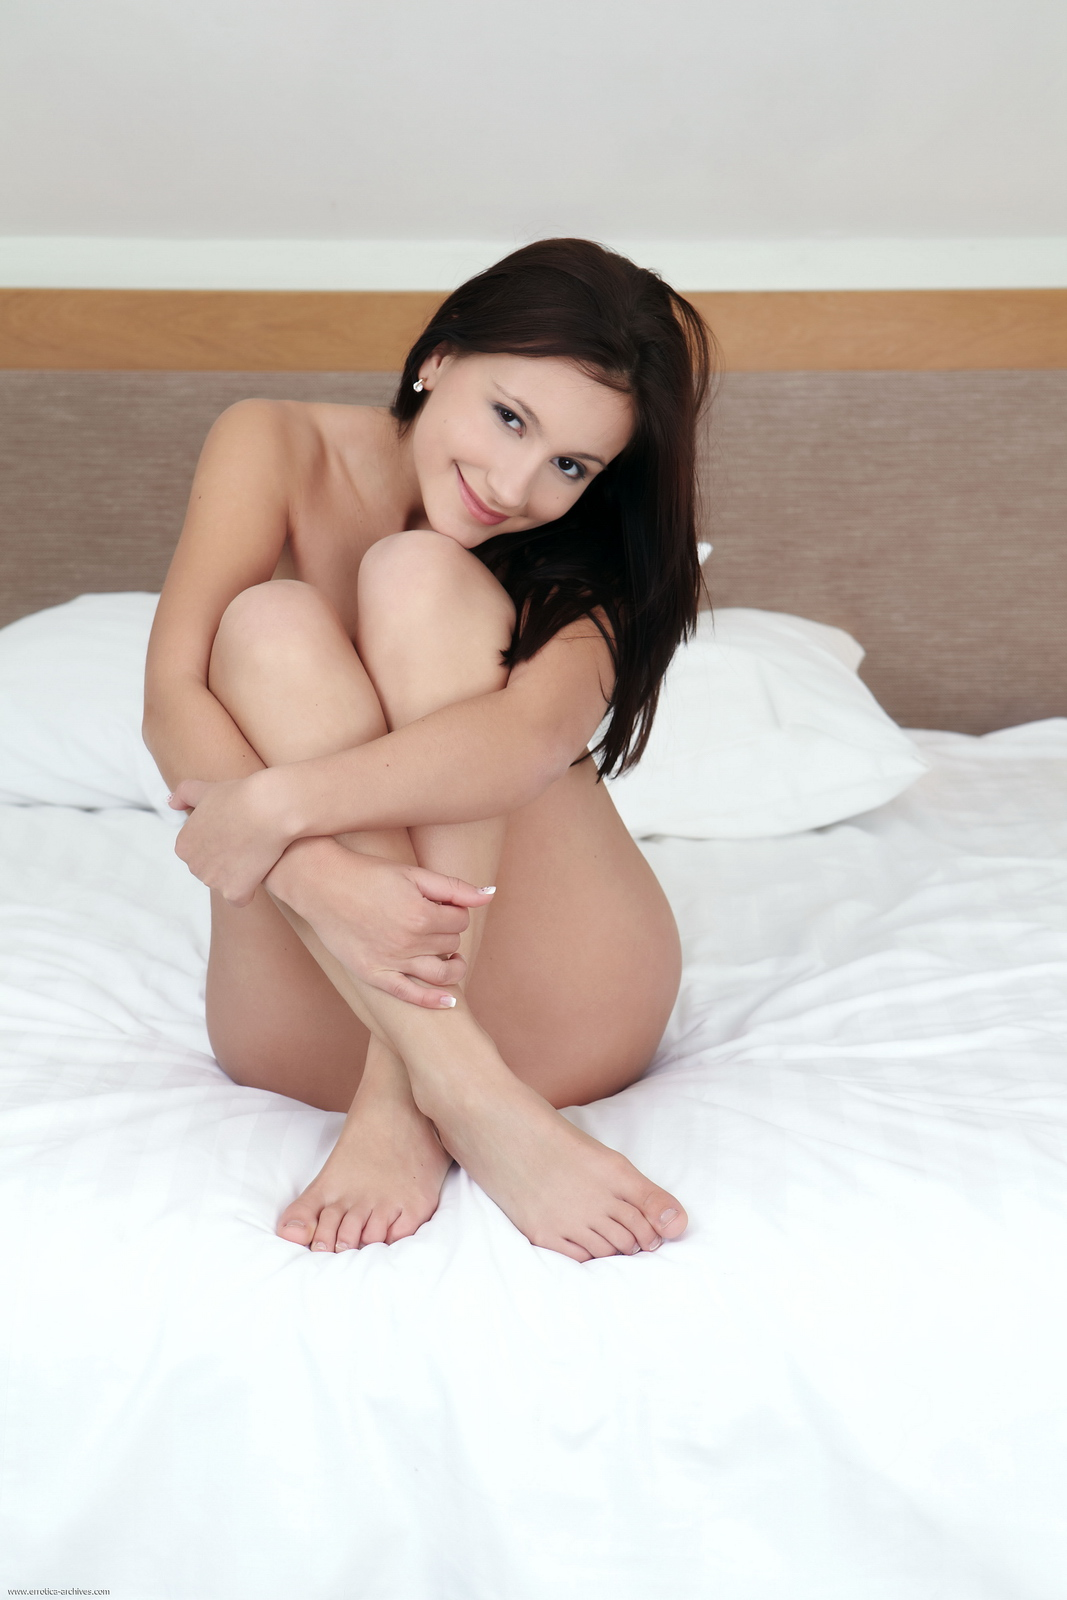 vicky-naked-bedroom-cute-ass-errotica-archives-01